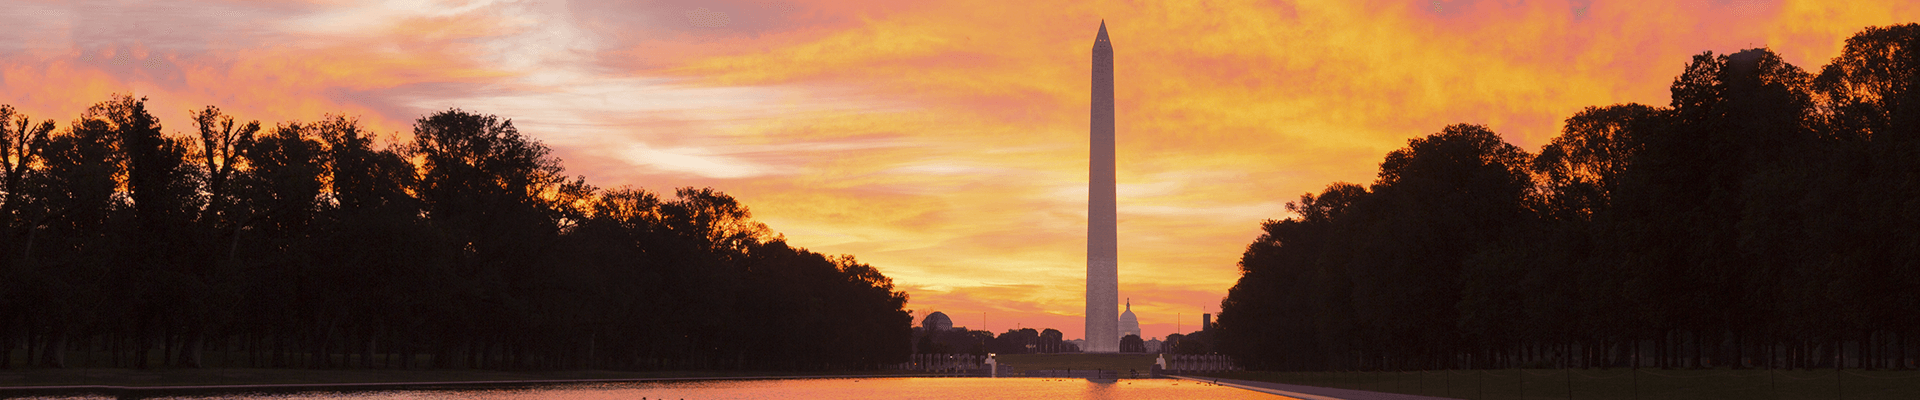 StoneGate Realty Group Washington Monument